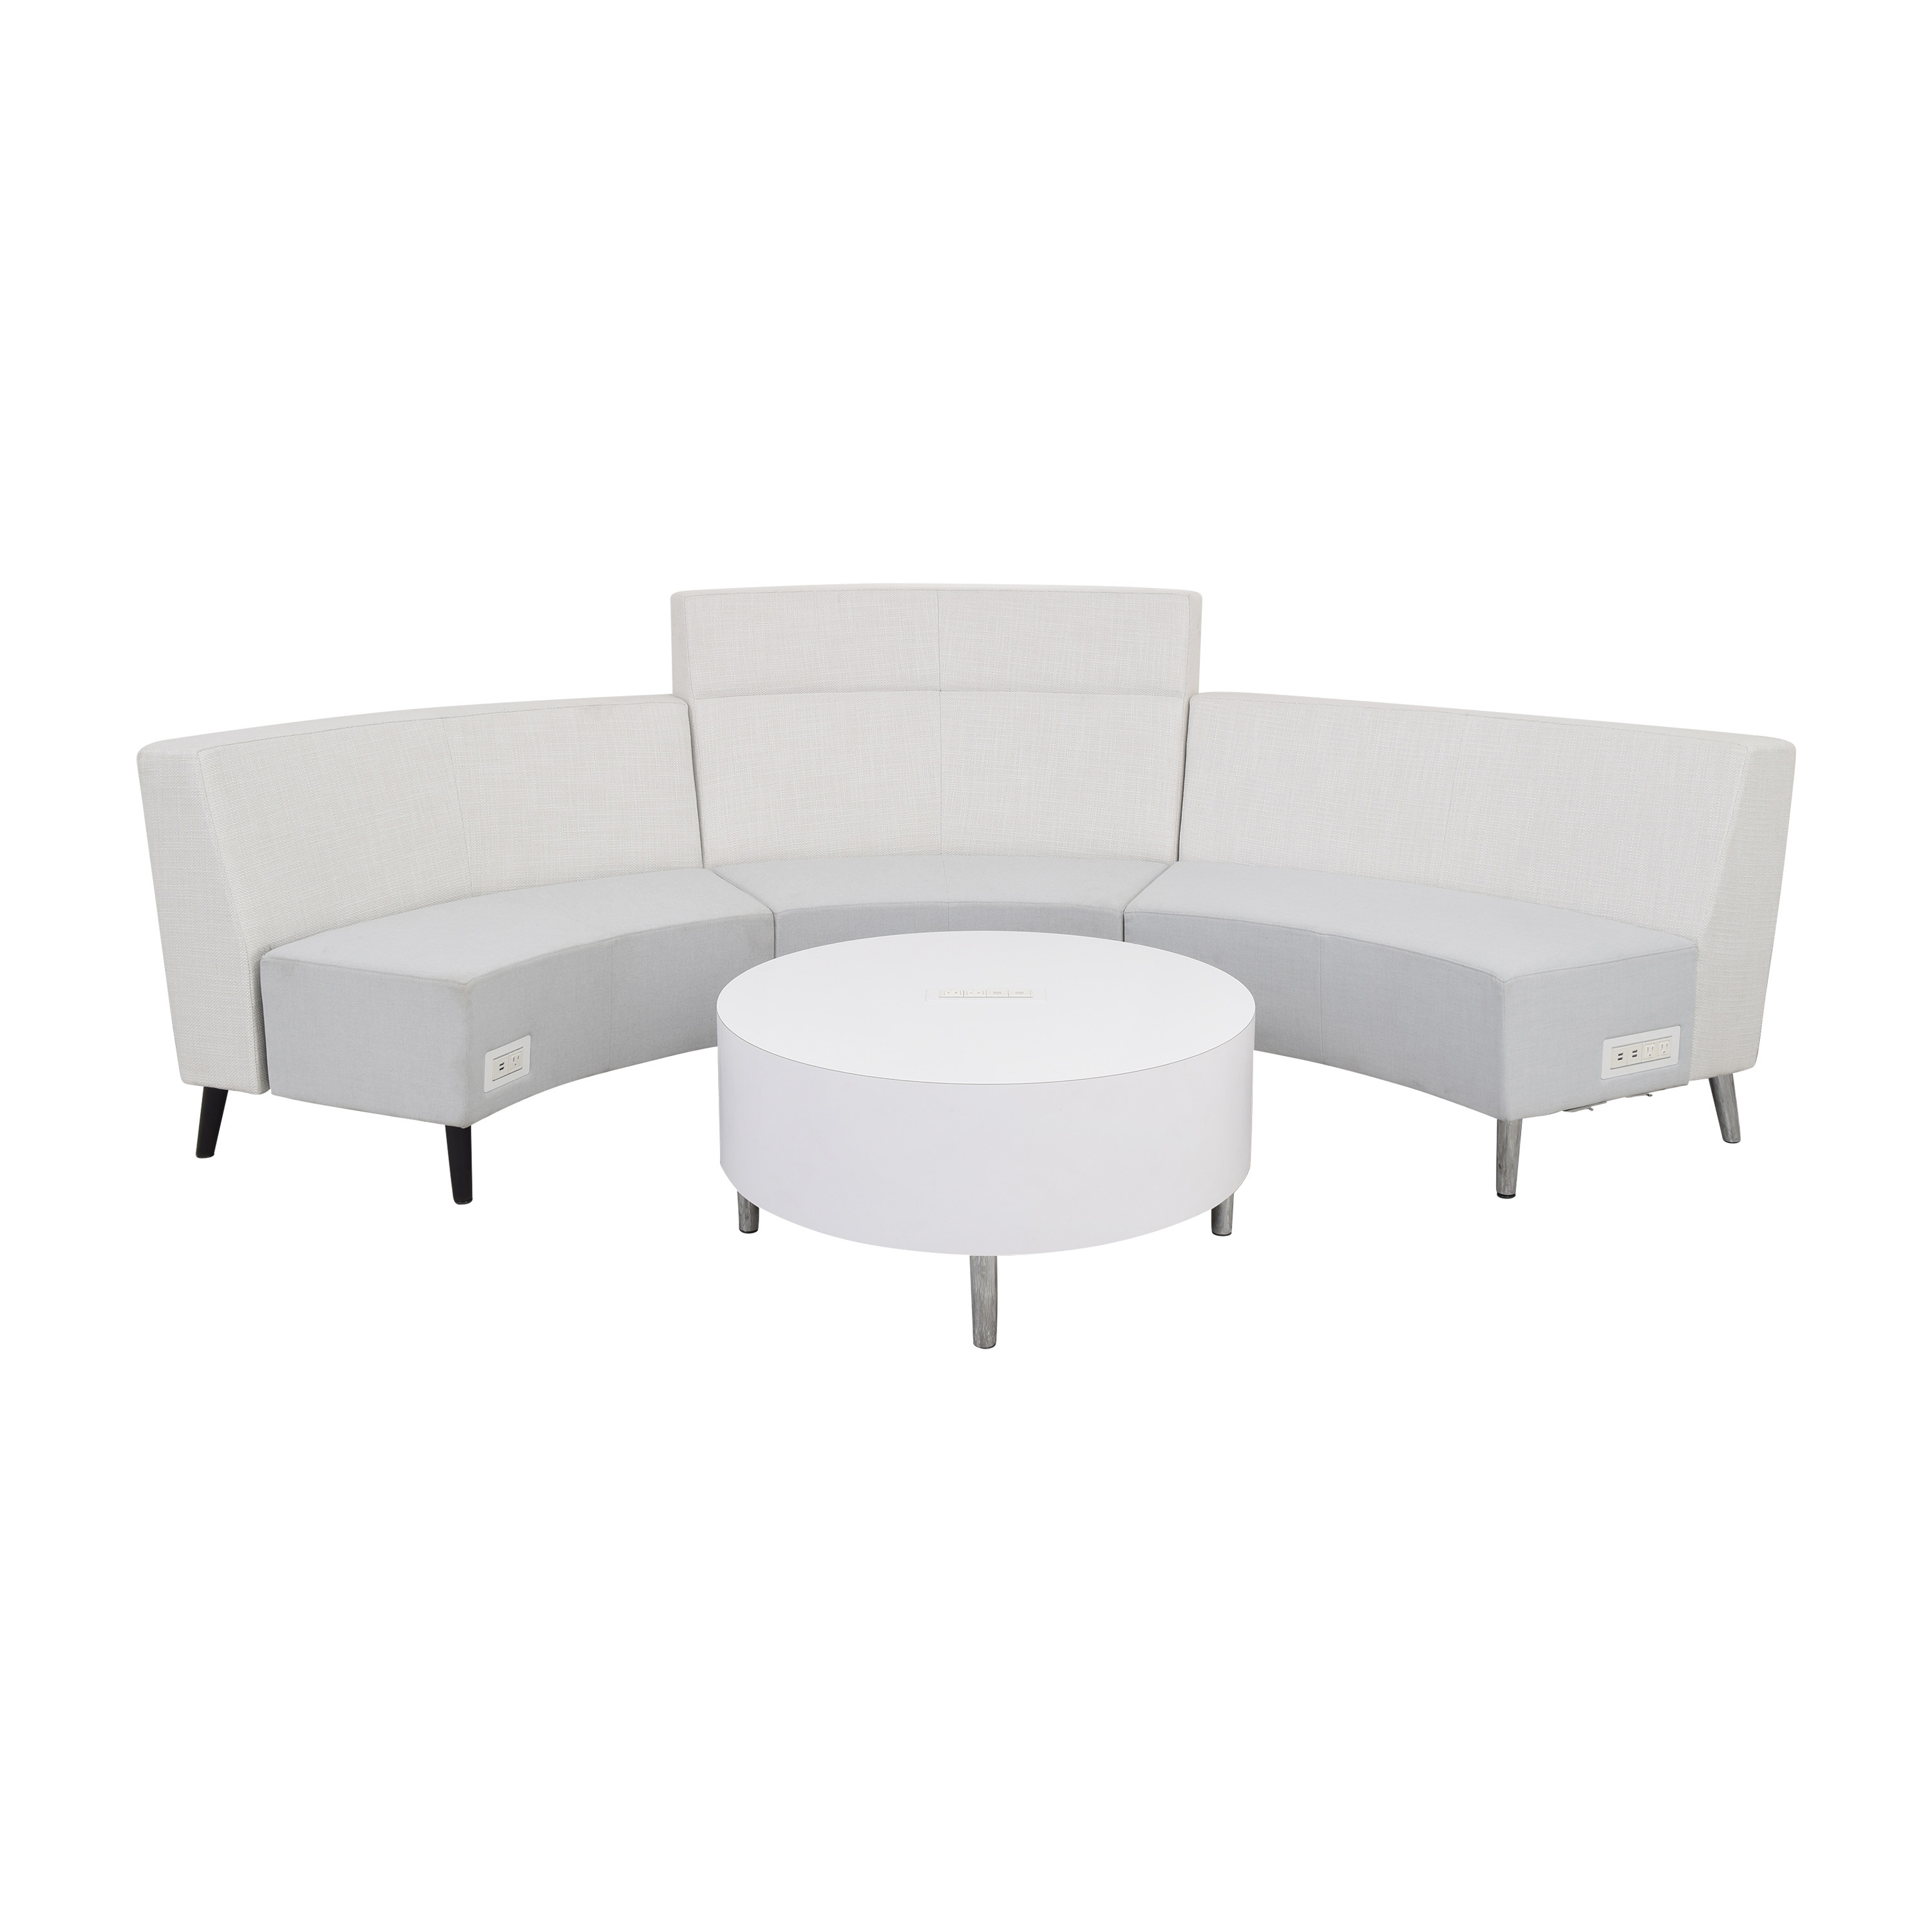 Global Furniture Group Global Furniture Group River Sectional Sofa with Coffee Table Section Sectionals